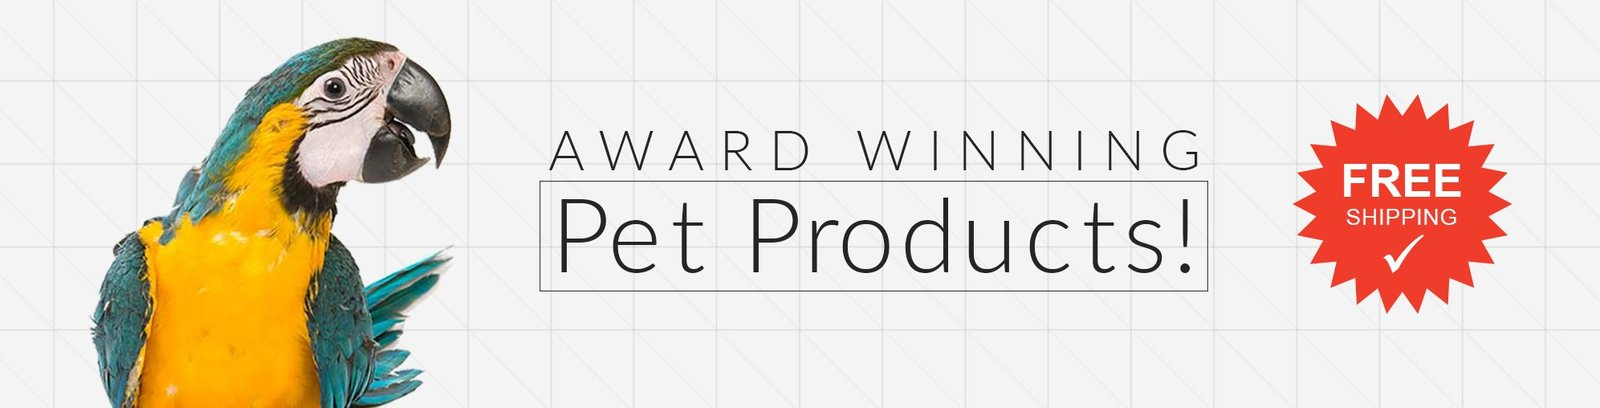 Award Winning Pet Products with Free Shipping! Pet Media Plus - teach your parrot to speak